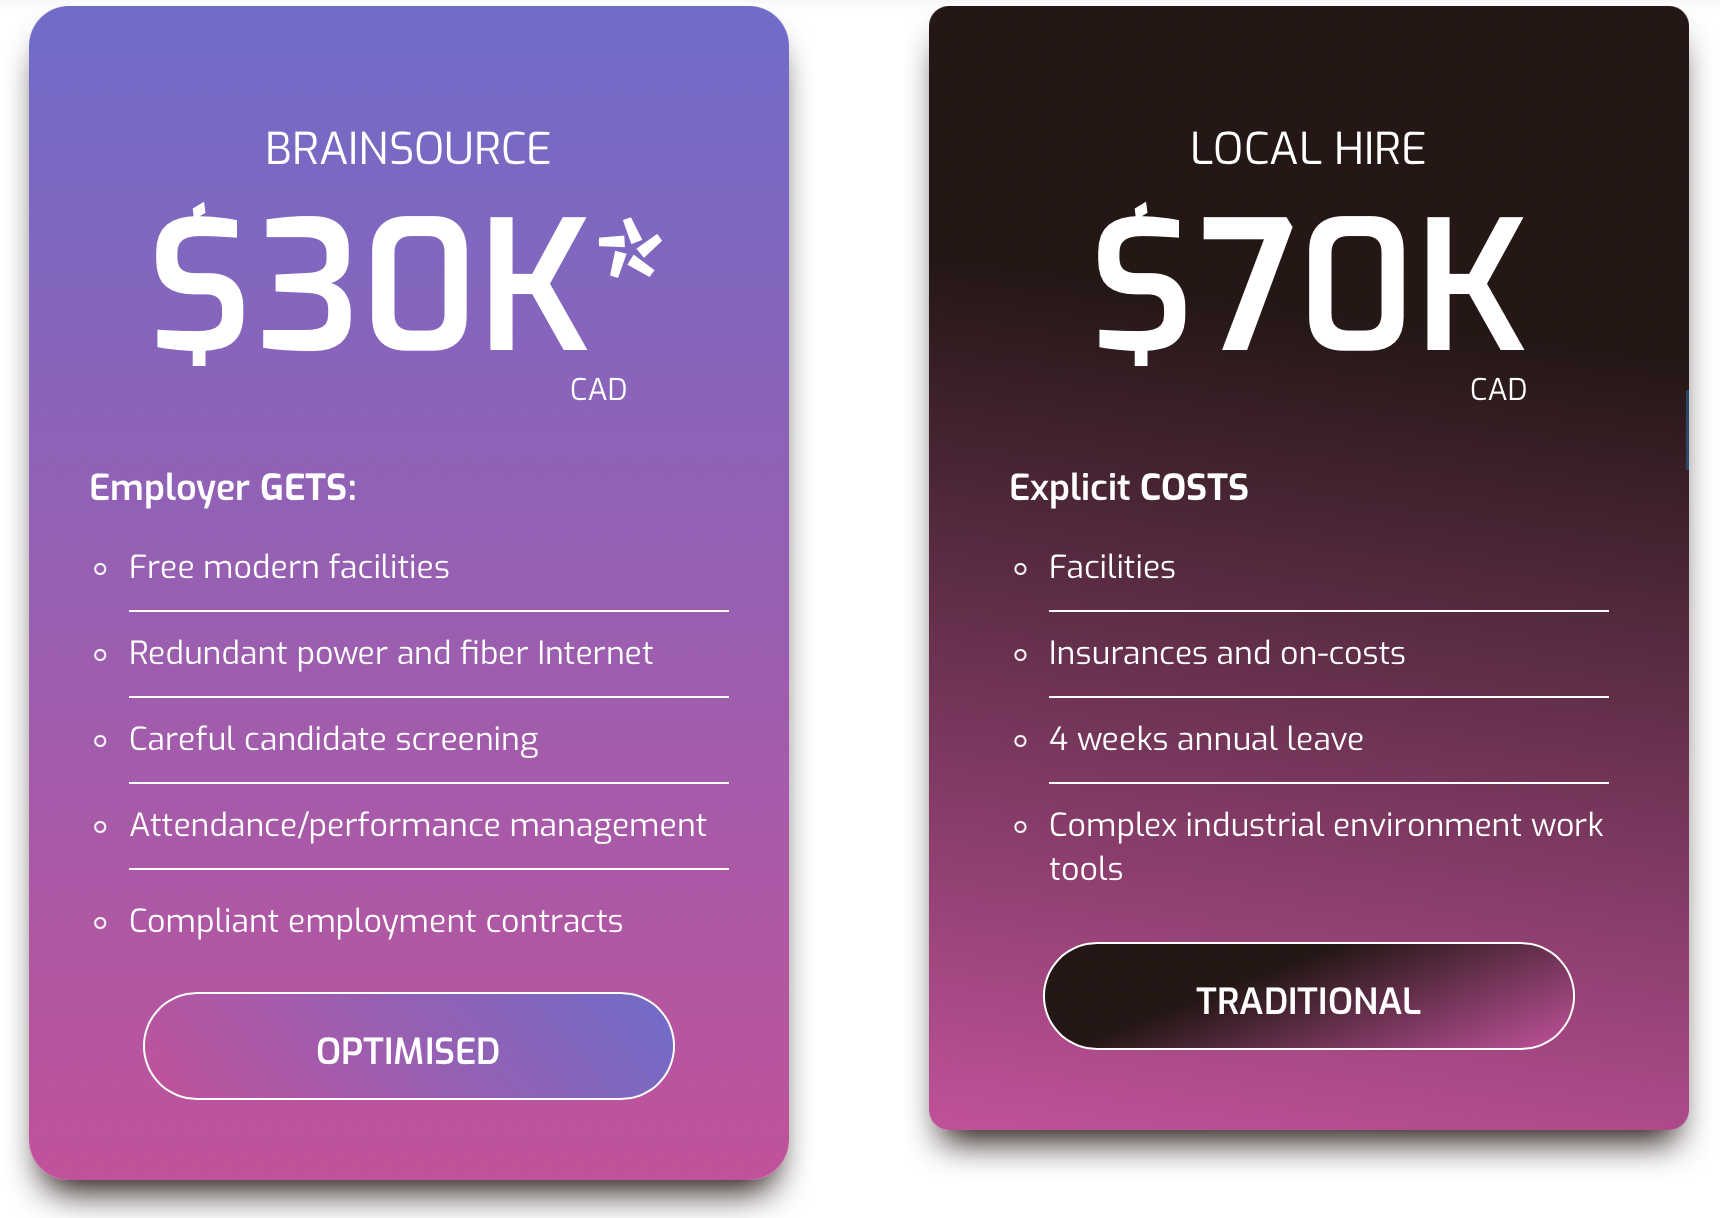 Brainsource CAD Pricing